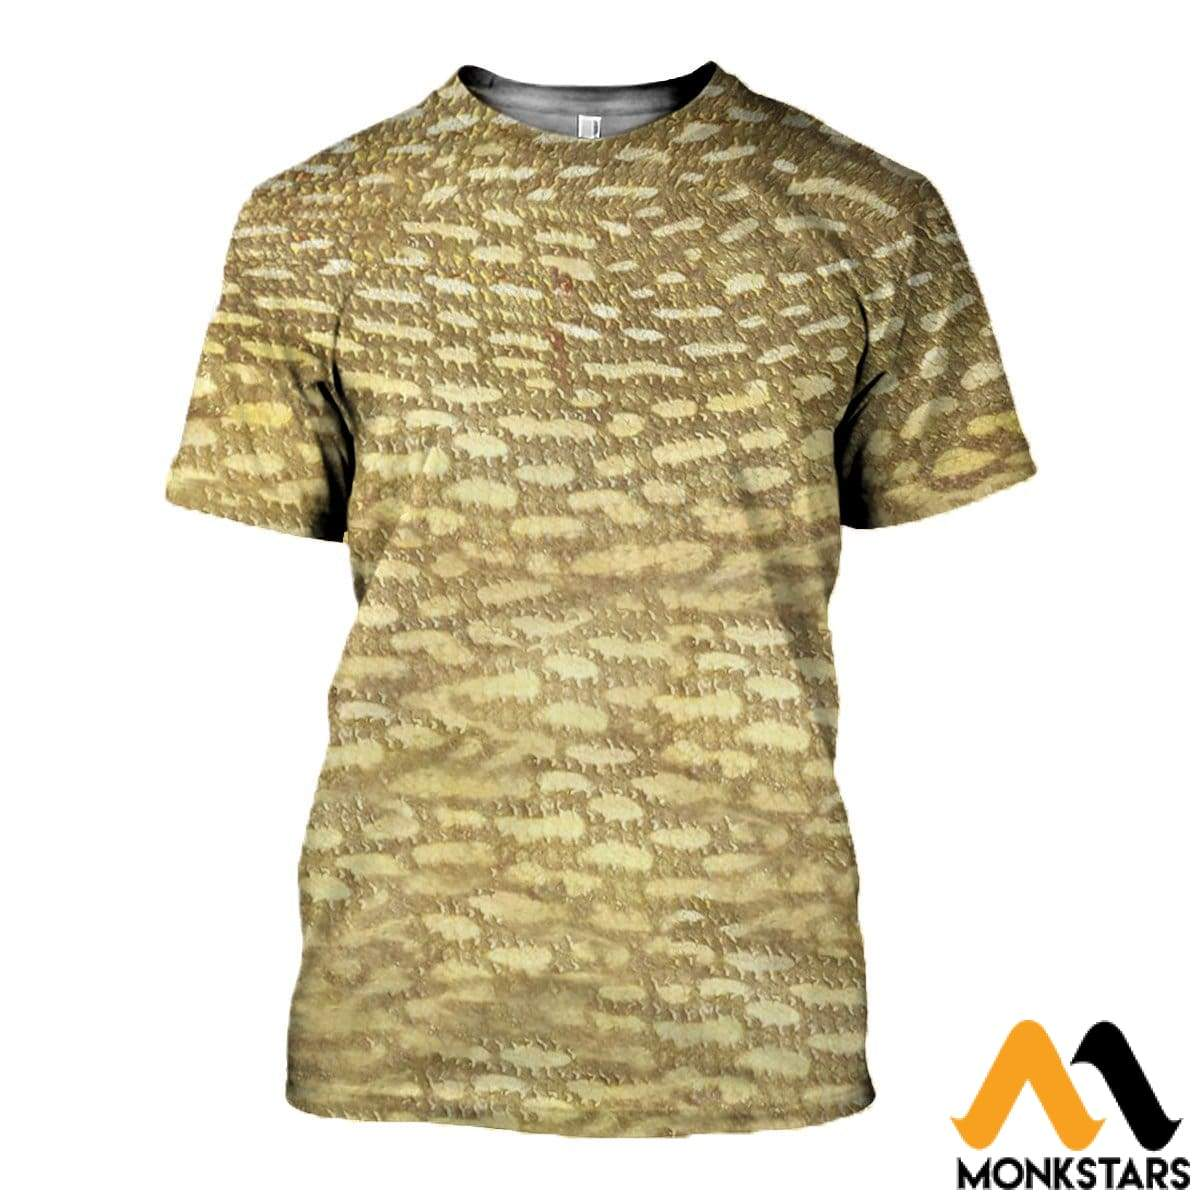 3D Printed Fish Skin Clothes T-Shirt / Xs